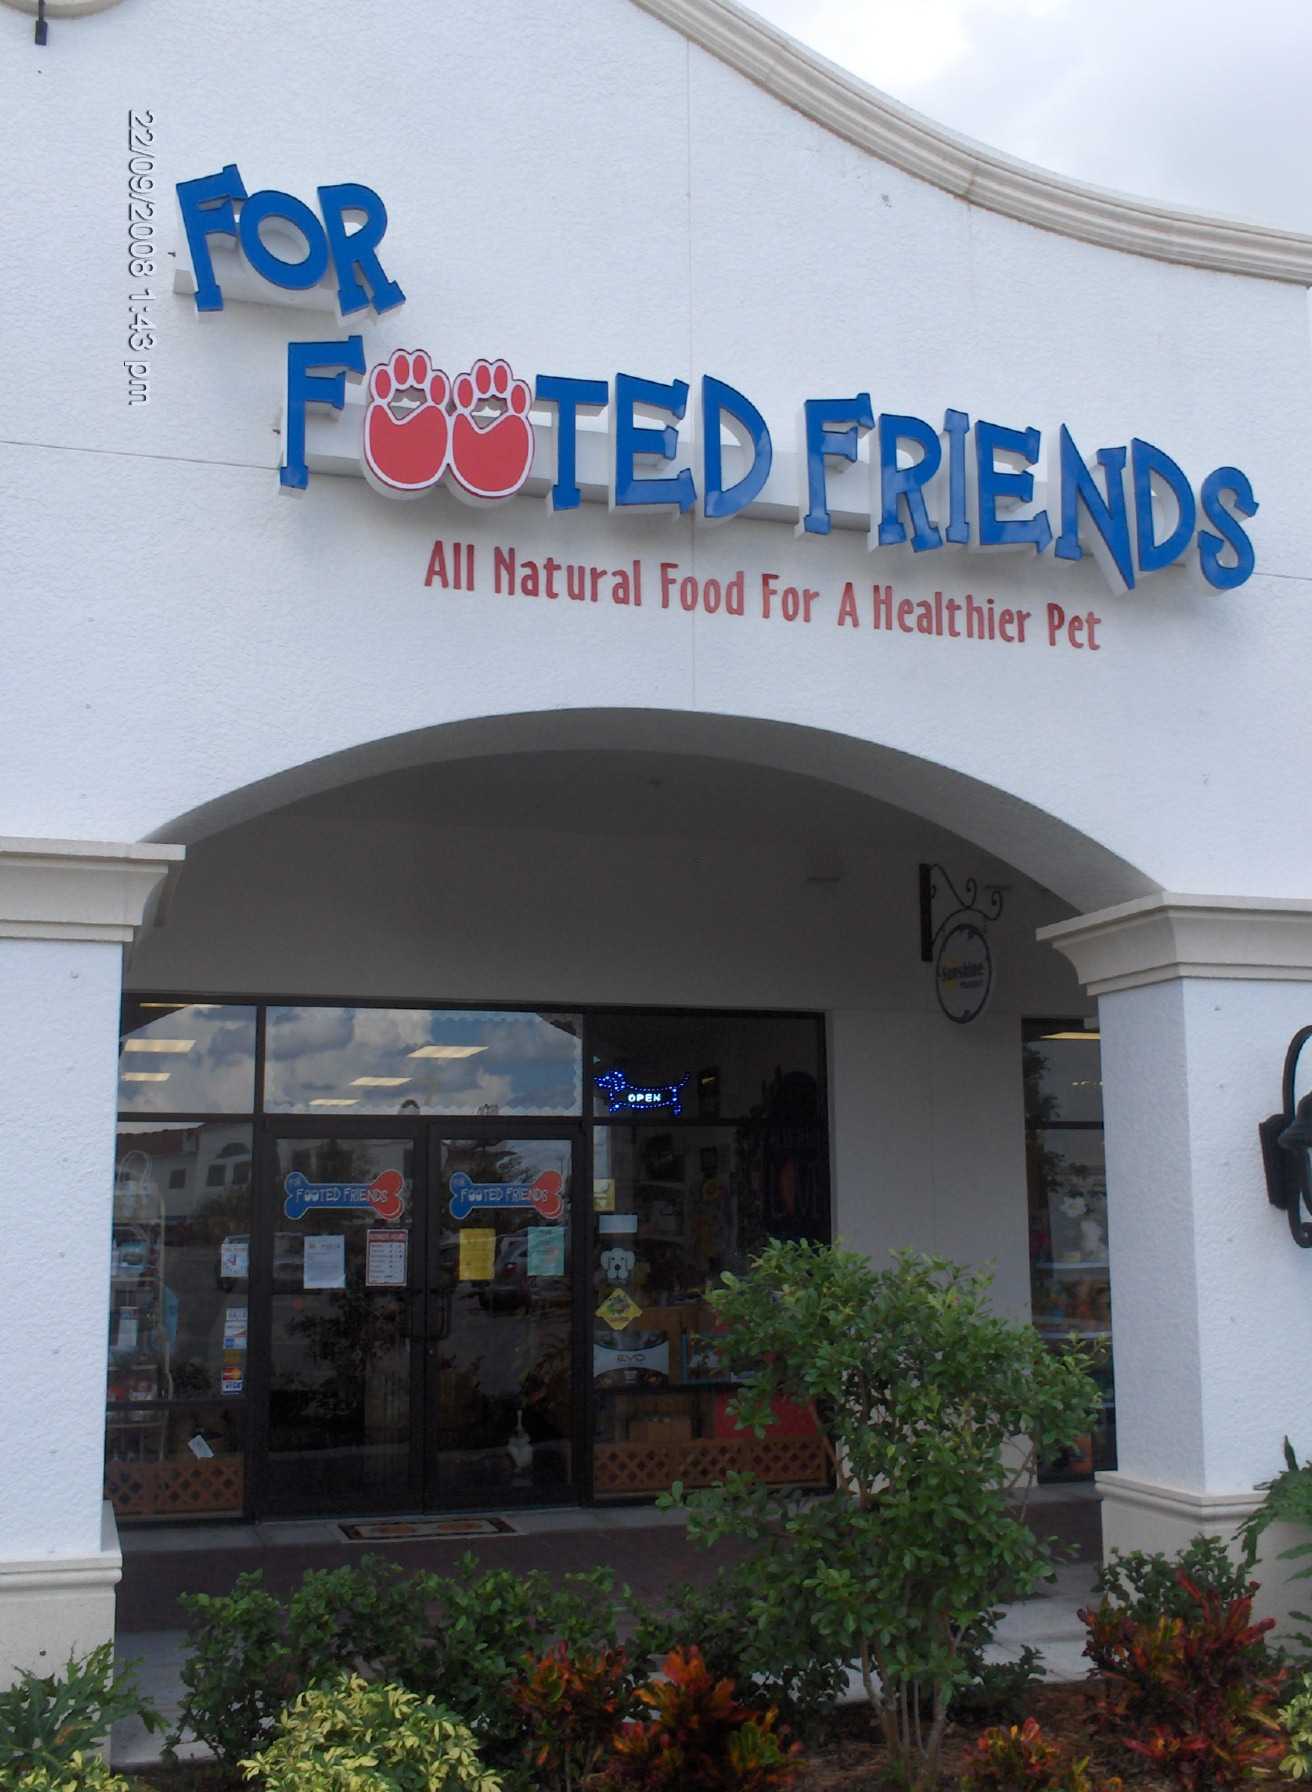 Pet Friendly For Footed Friends